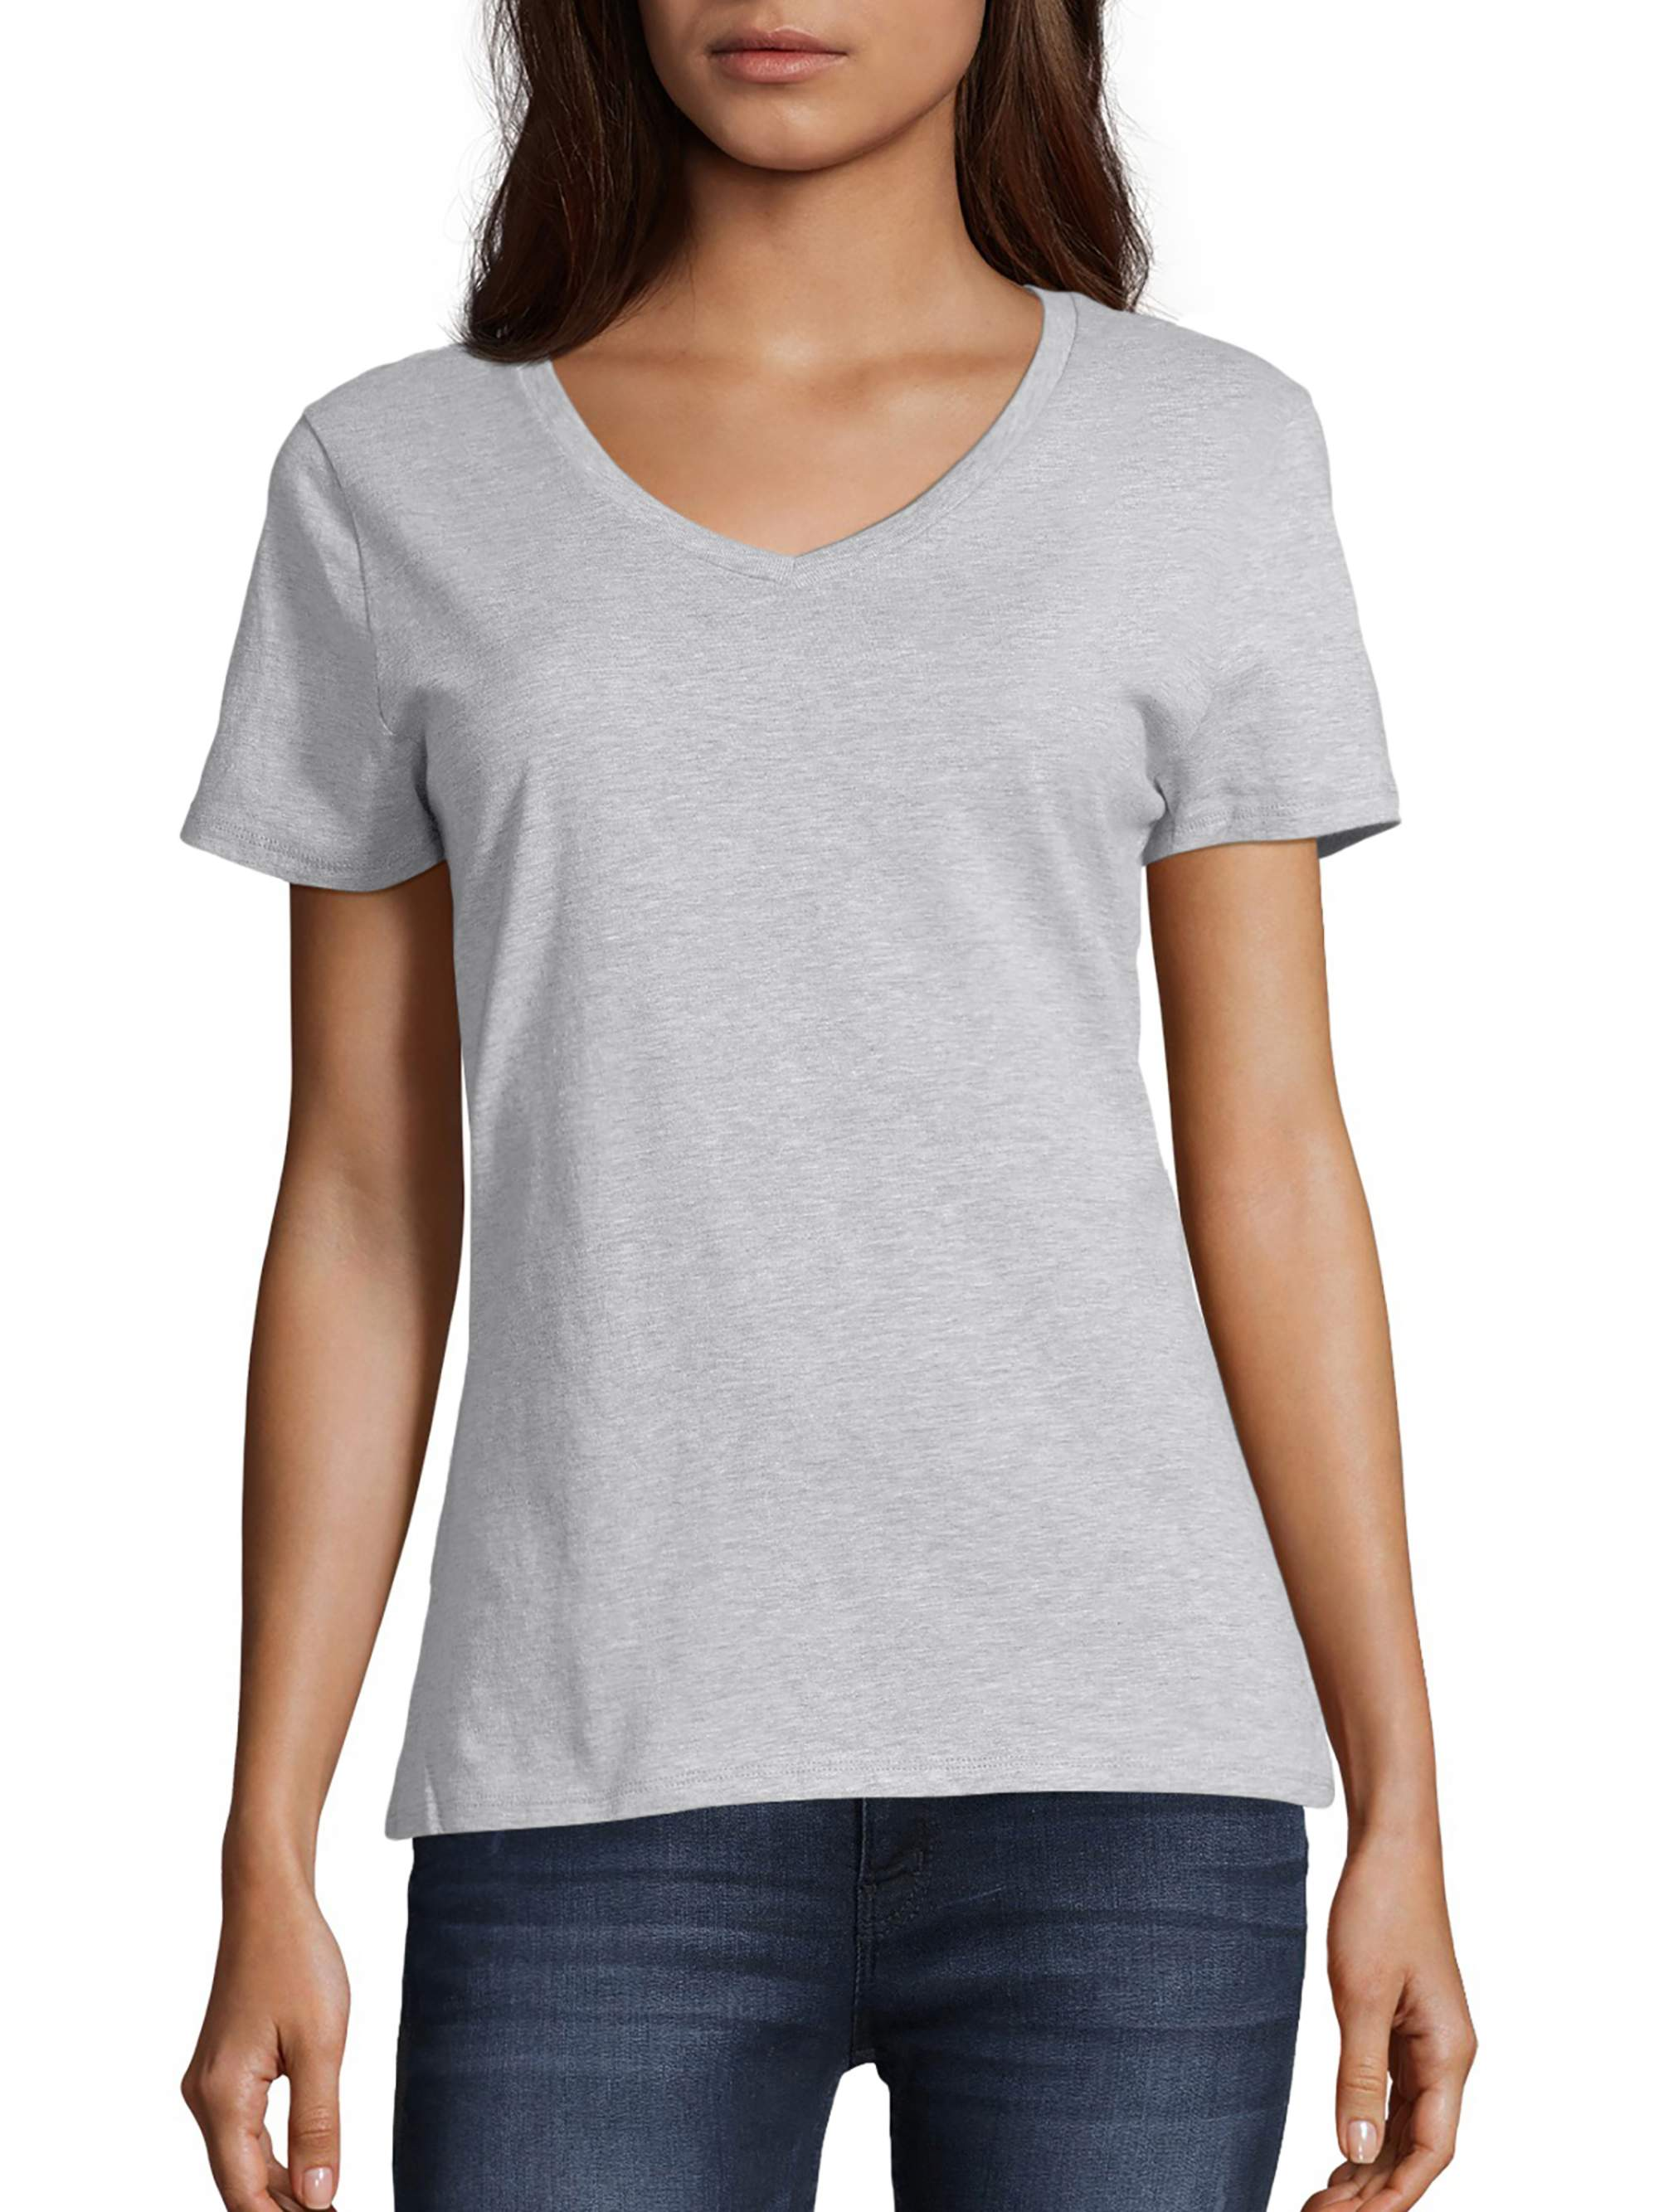 Night Sky Lovely Printed T-Shirts,Crew Neck T-Shirt of Girls,Polyester,Deep Oute